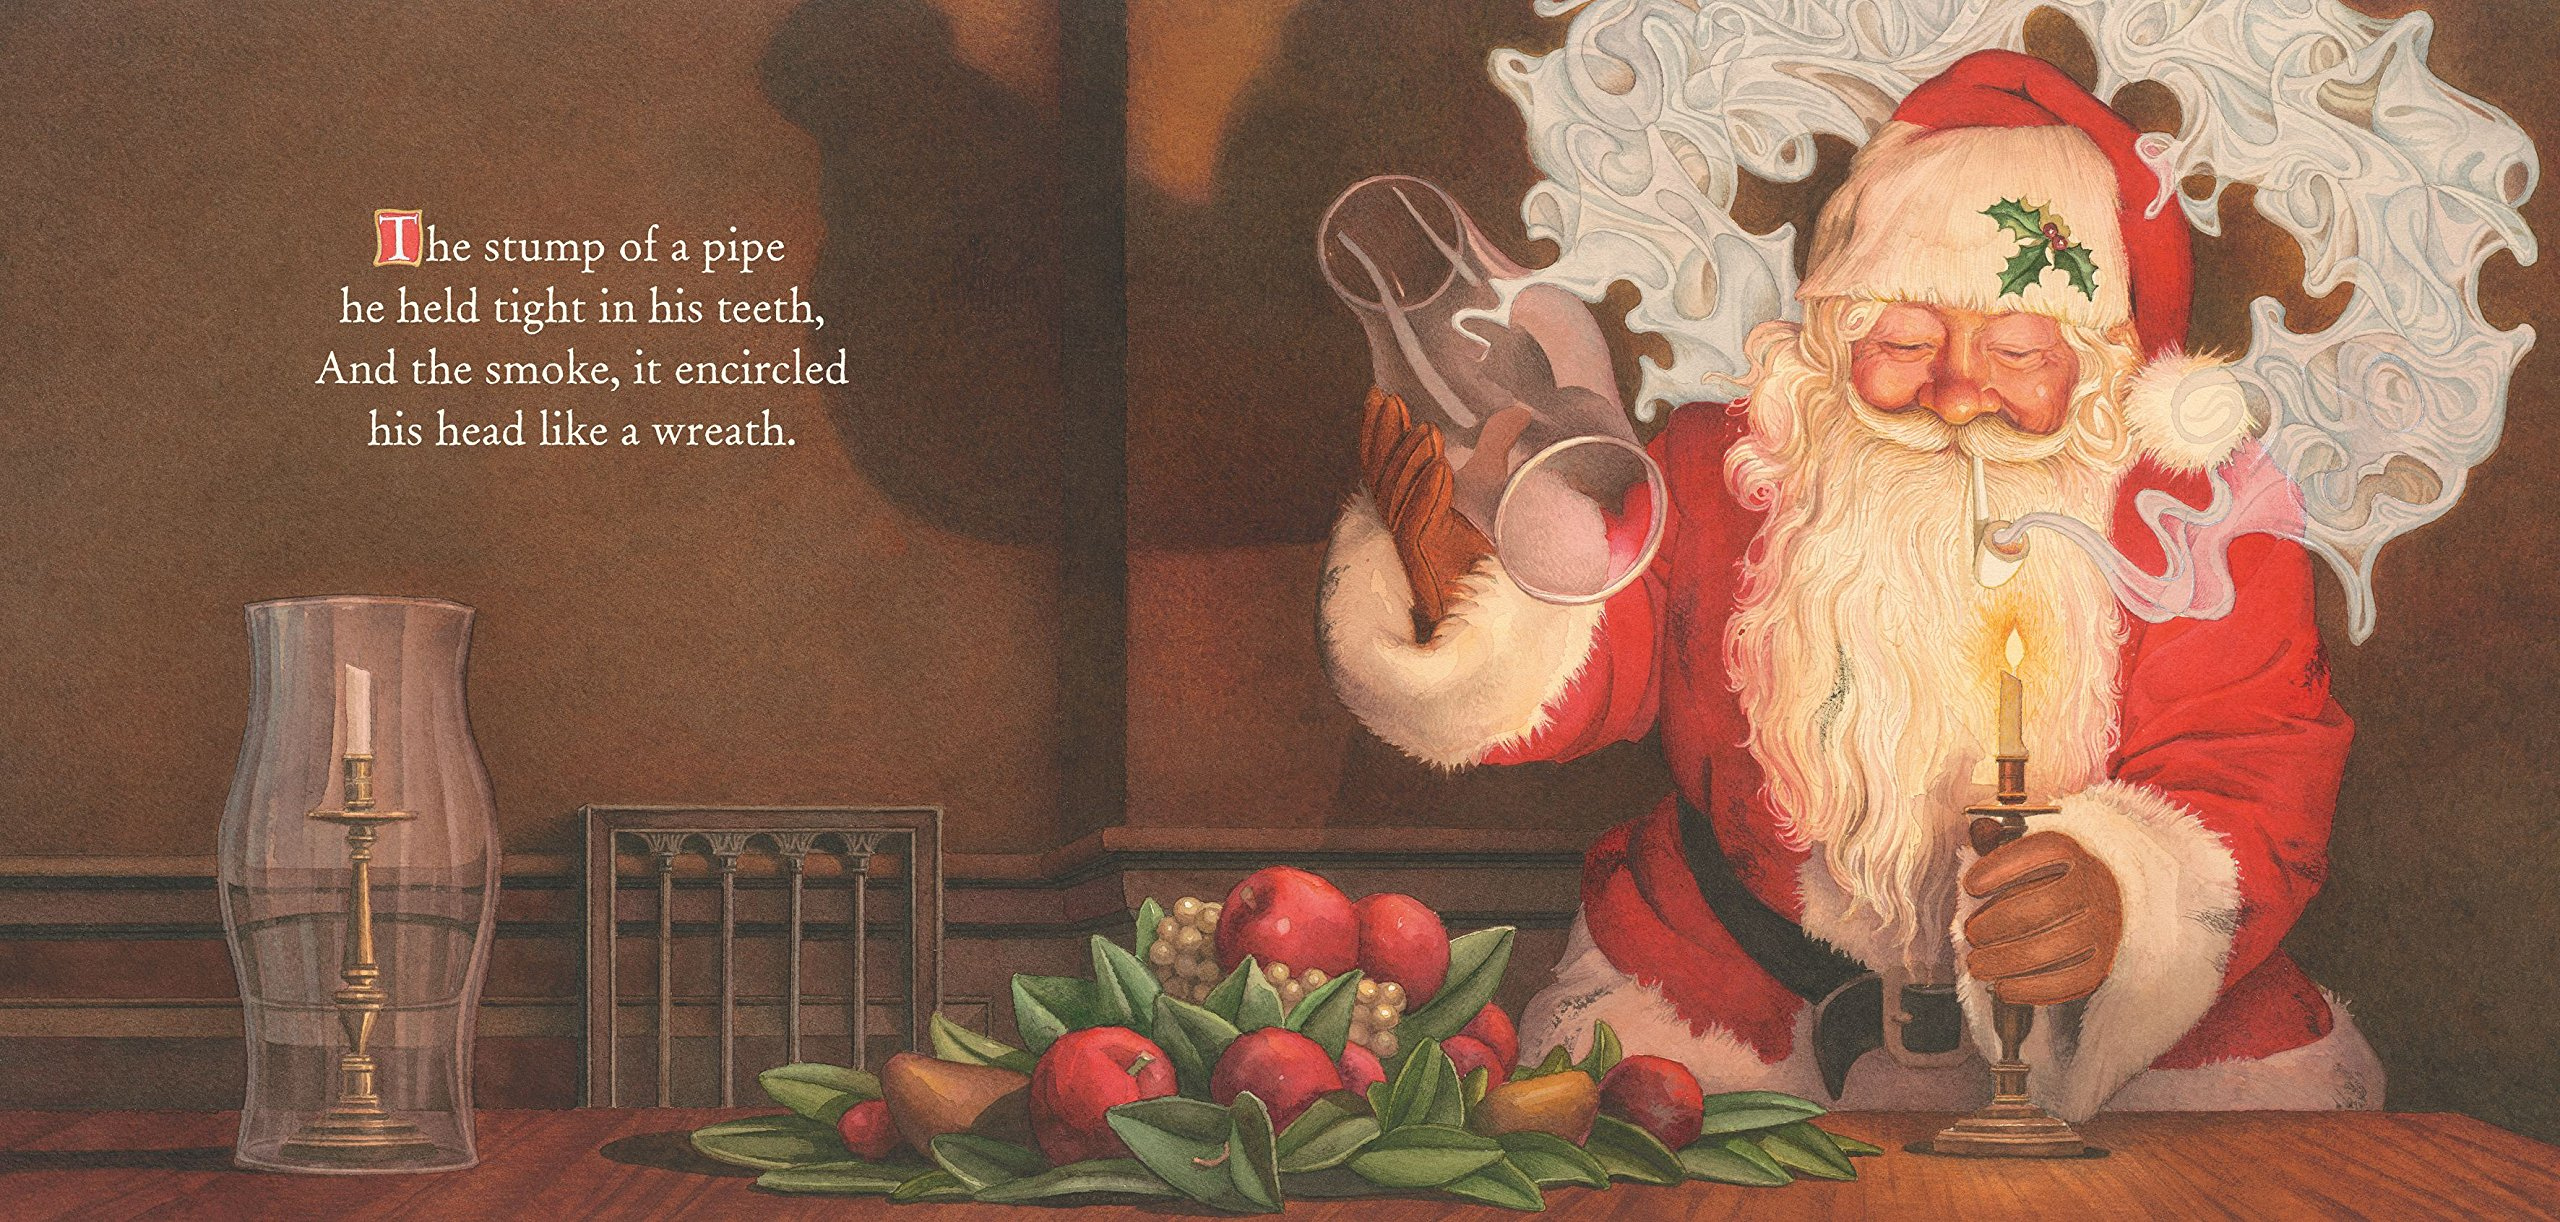 amazoncom night before christmas board book the classic edition 9781604334388 clement clarke moore charles santore books - Christmas Classic